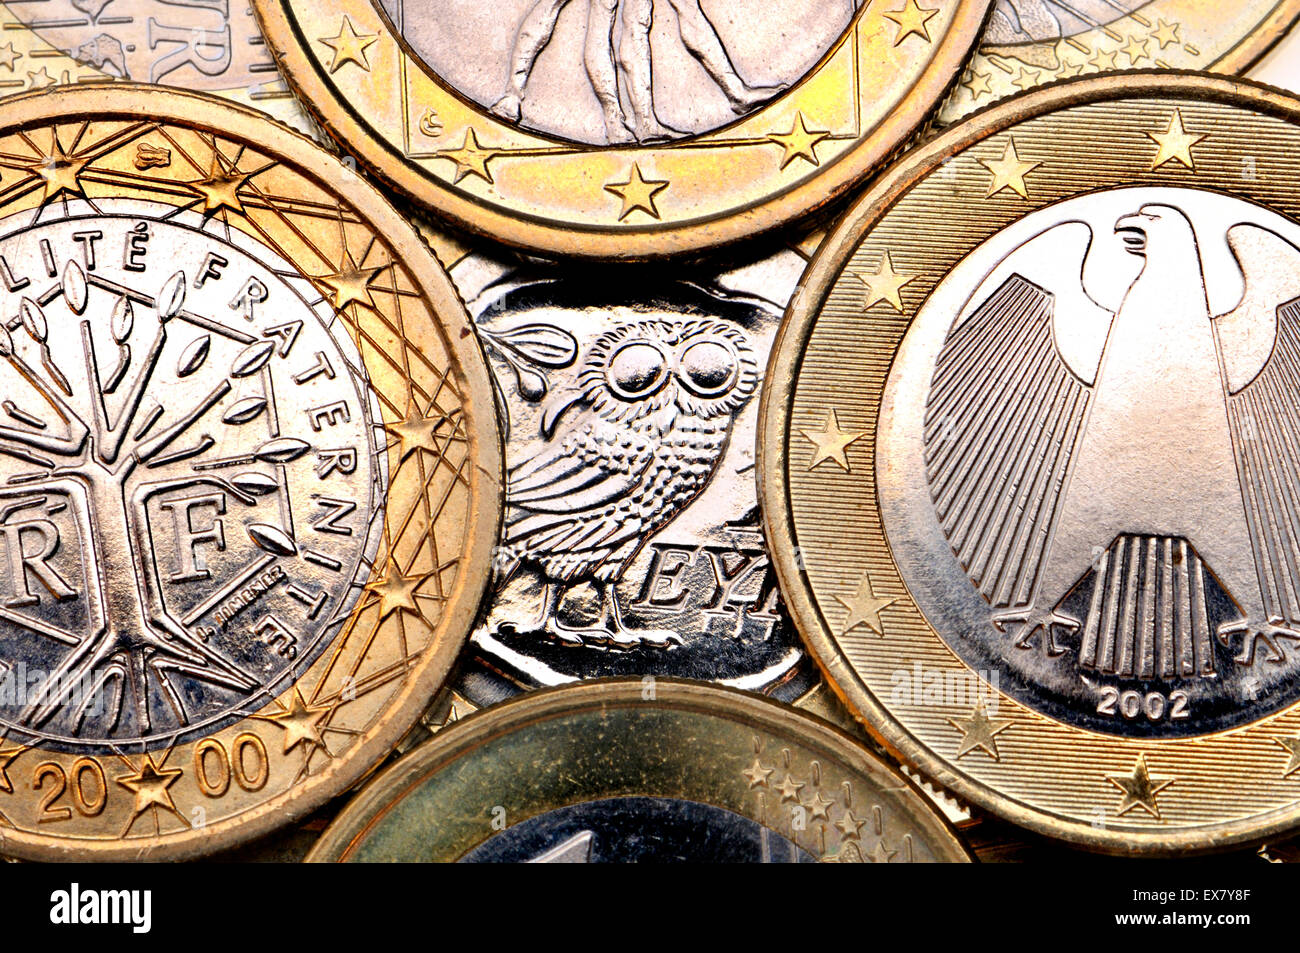 Greek Euro coin hiding behind other countries - Stock Image